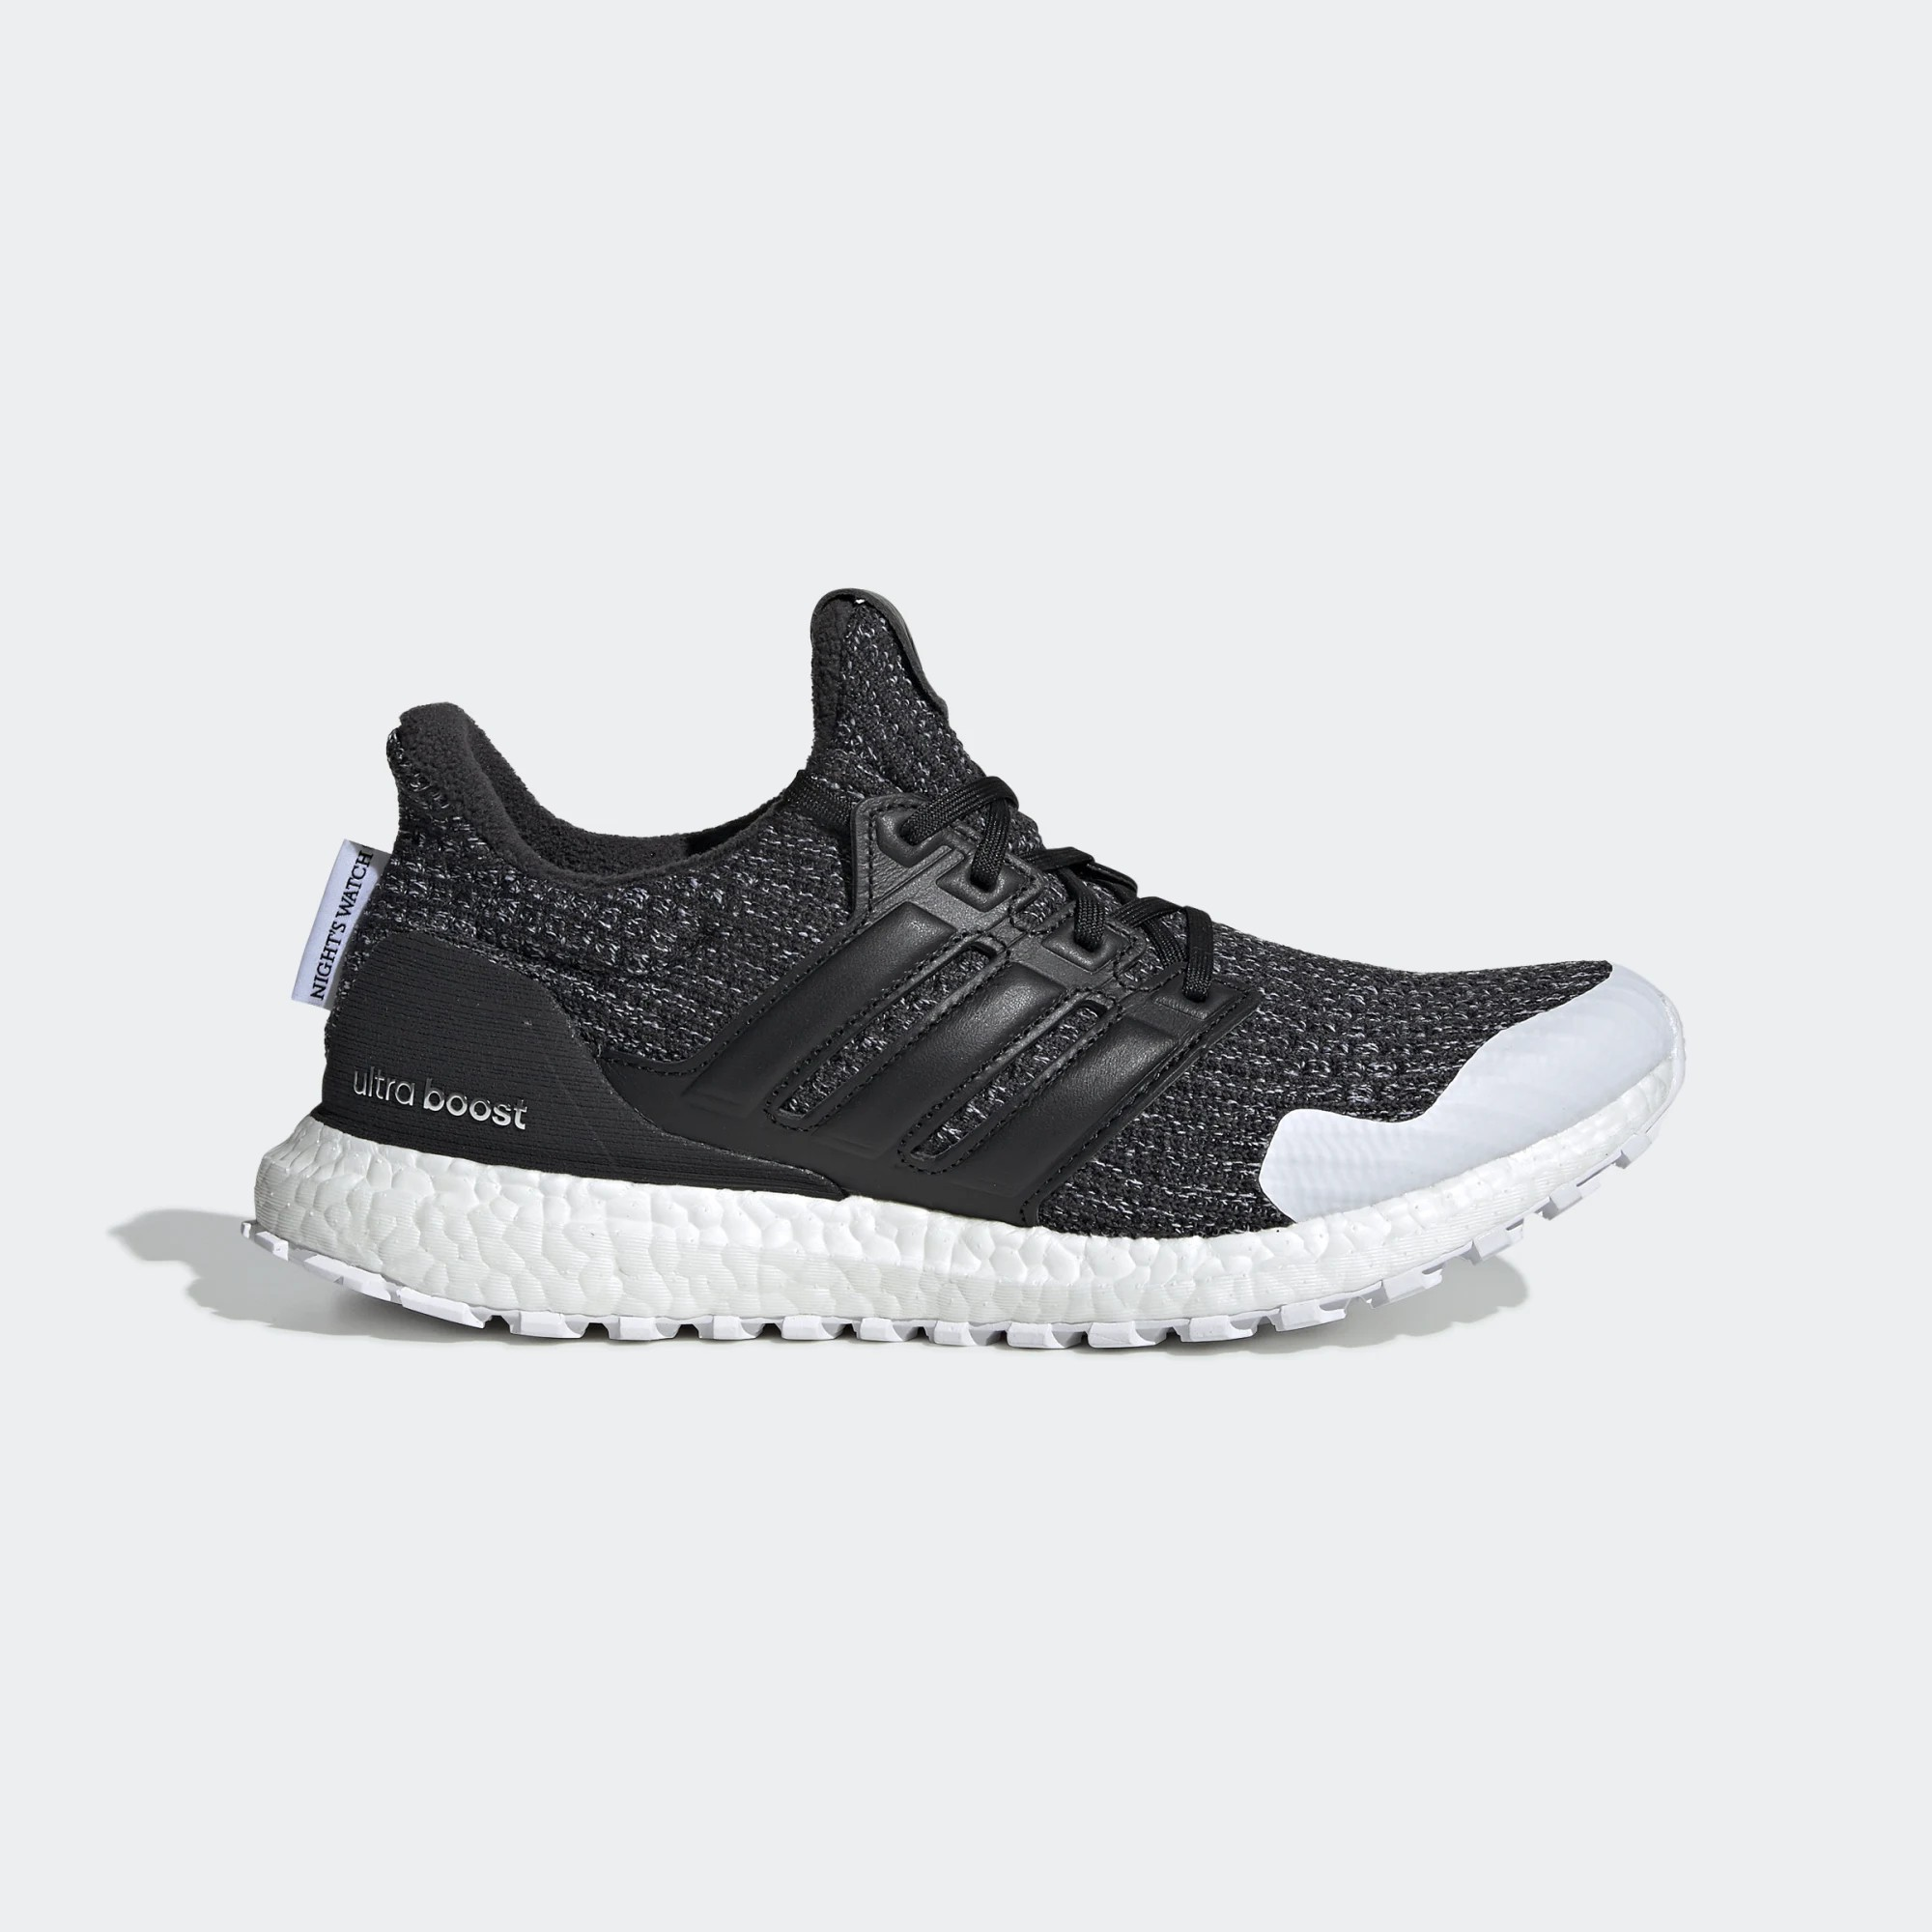 UltraBOOST X GOT Adidas EE3707 Grey/Black/White